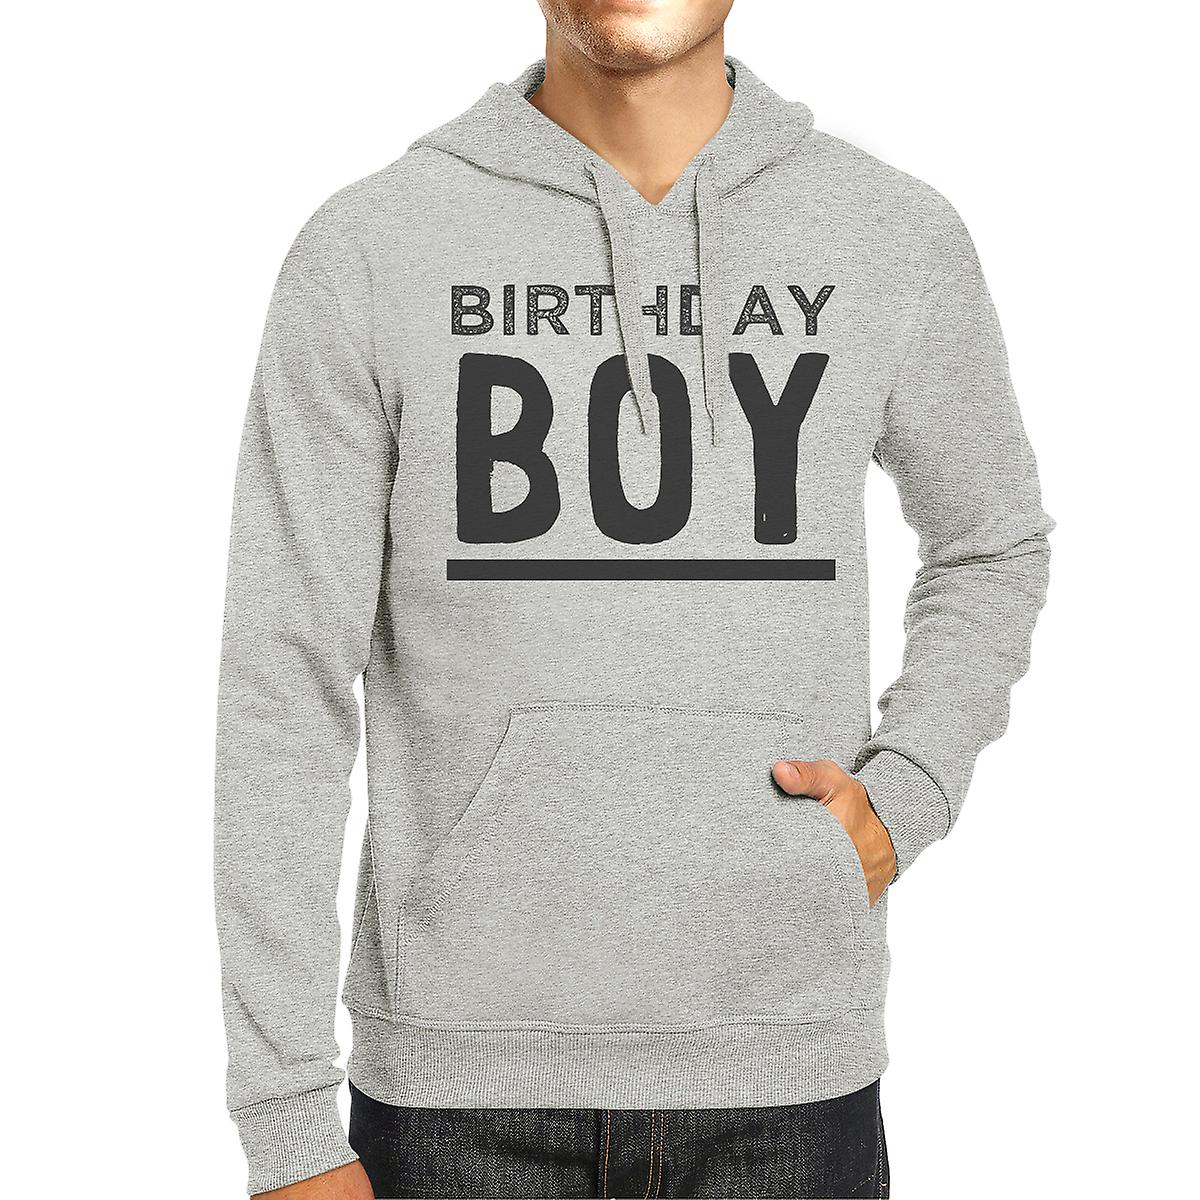 Birthday Boy Unisex Gray Hoodie Funny Shirt Gift For Him